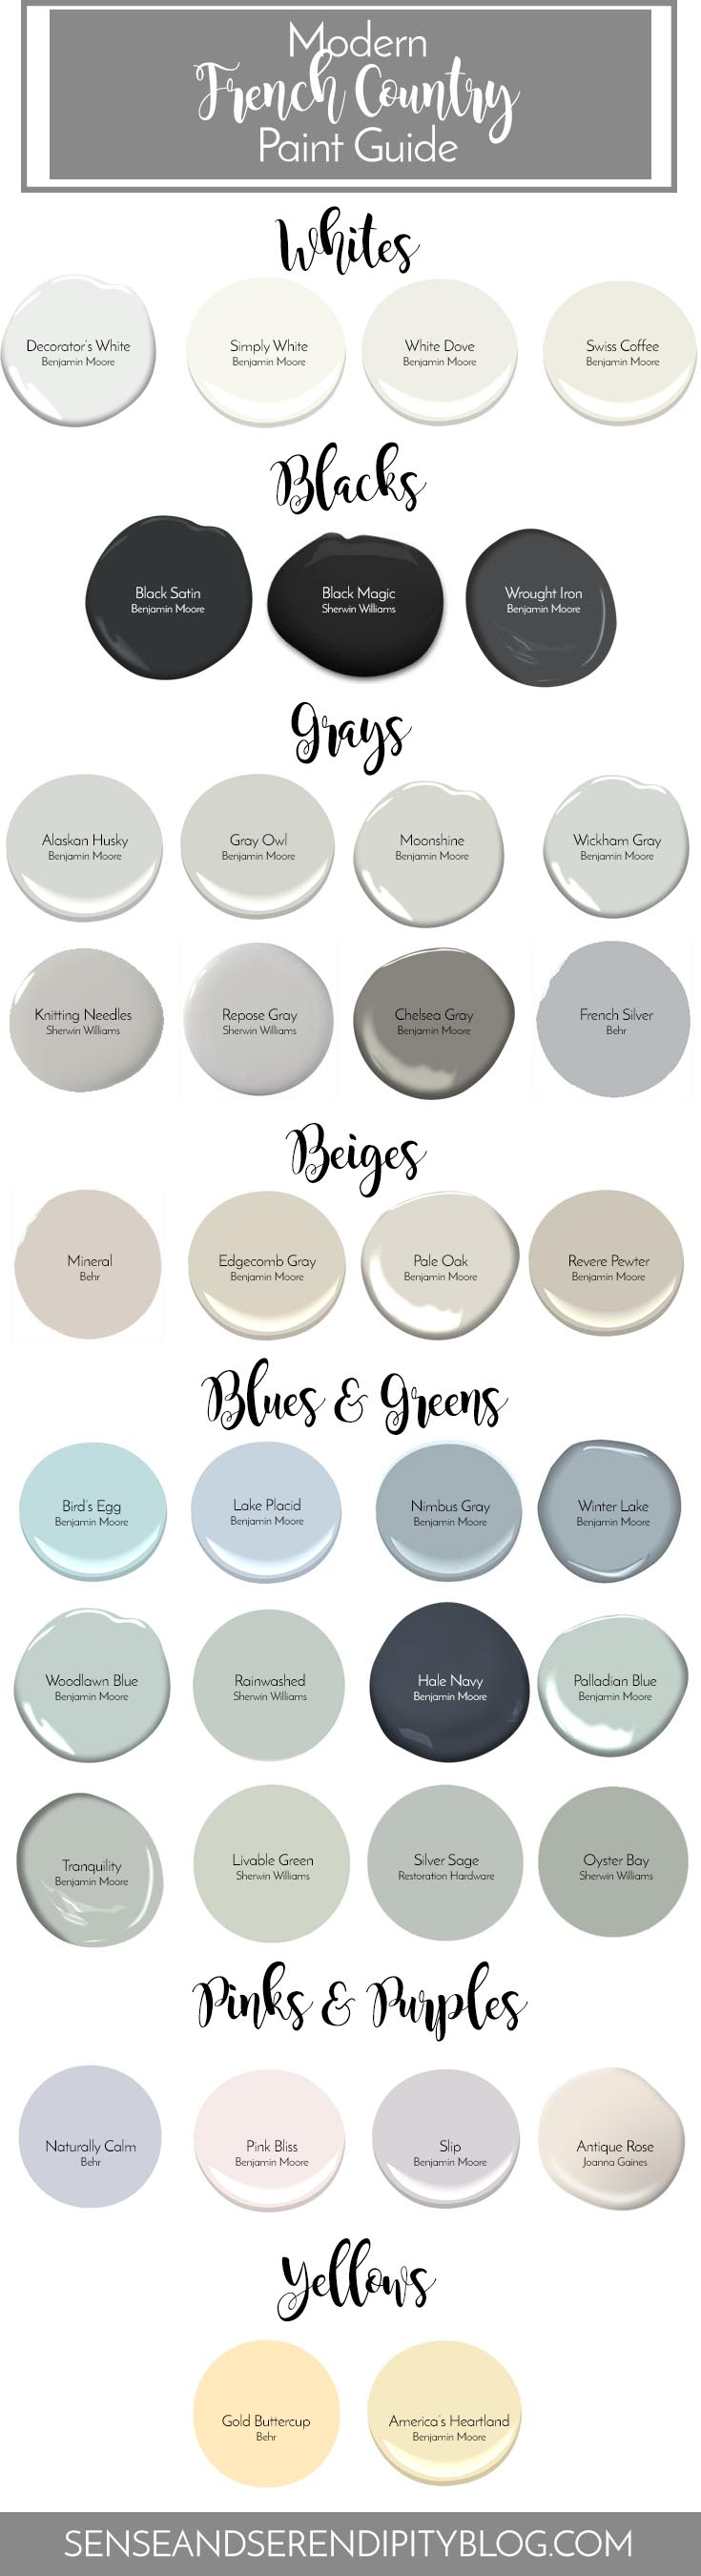 Cosmopolitan French French Country Paint Guide Sense Serendipity French Country Paint Guide Sense Serendipity Tan Color French G Color houzz-03 Color In French